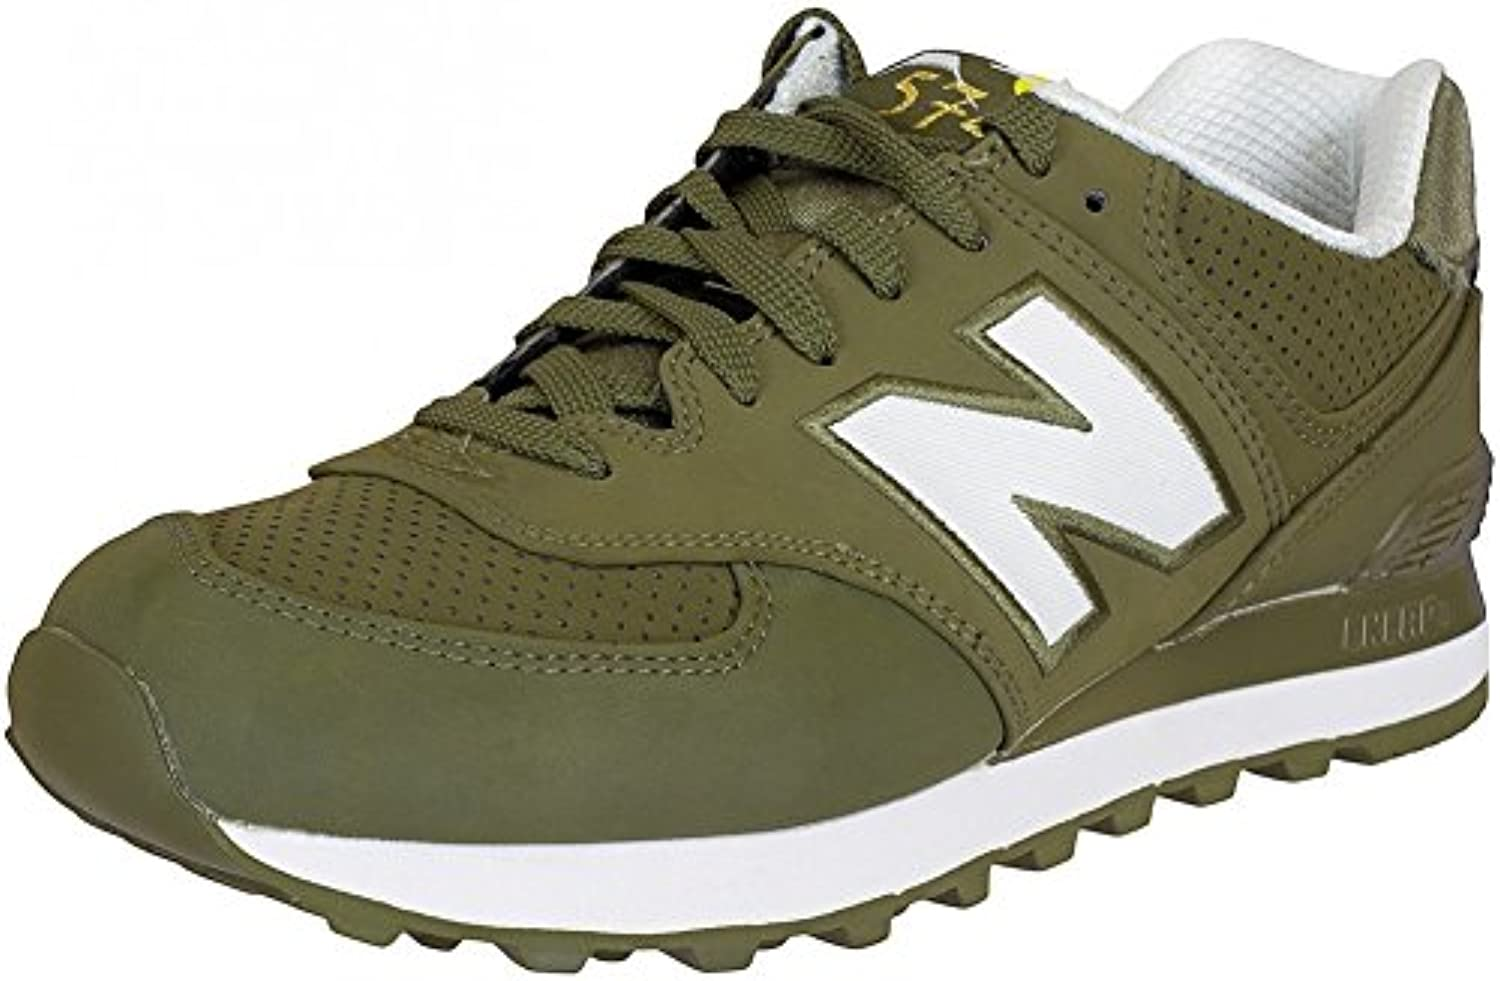 New Balance e Sneaker ML574 D Textil/Synthetik Oliv